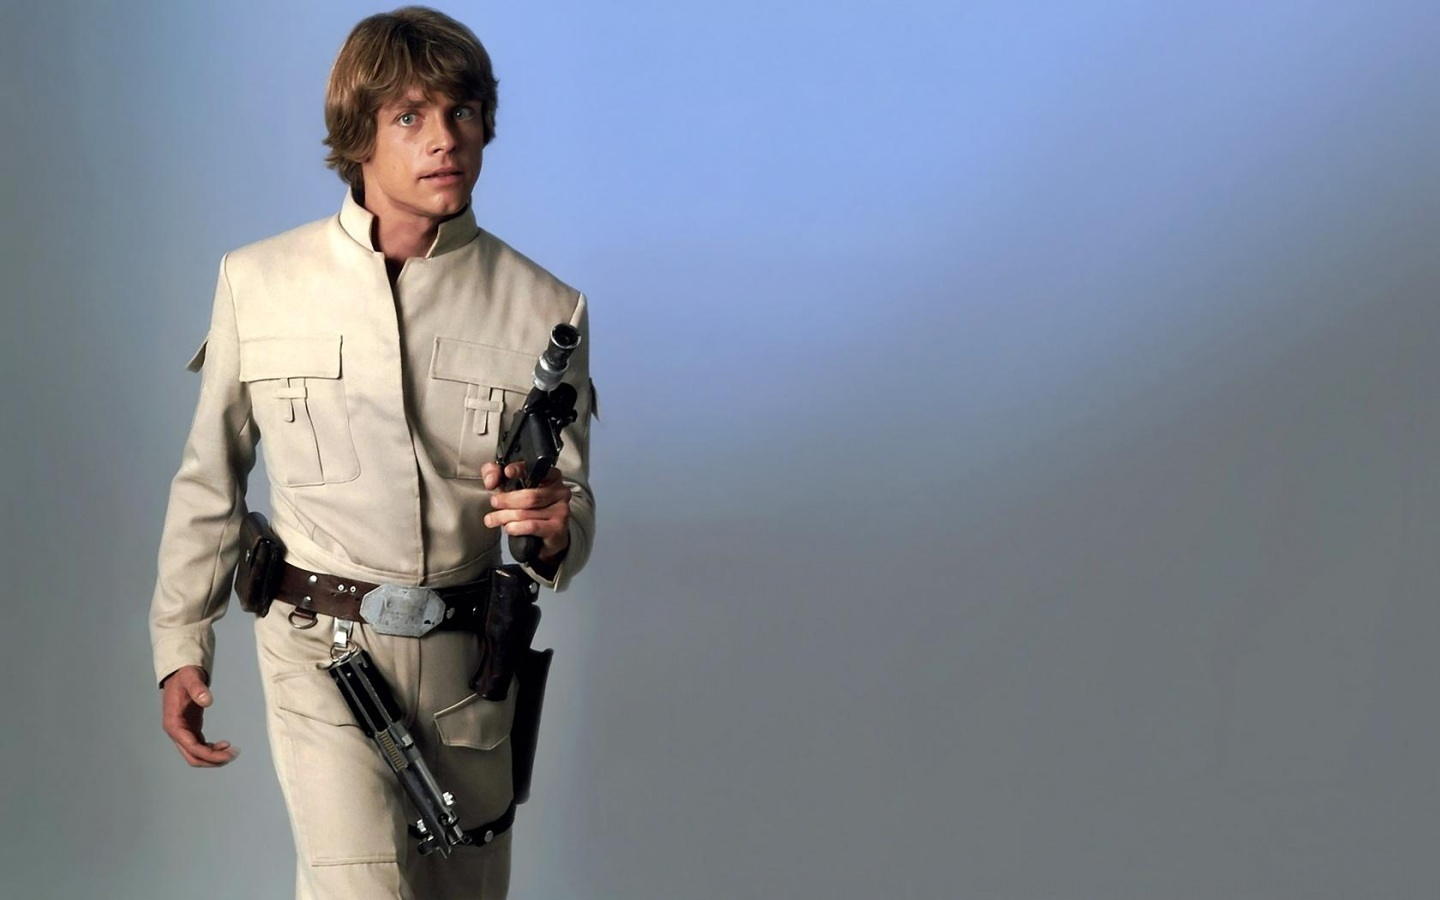 Luke Skywalker Wallpaper HD 1440x900